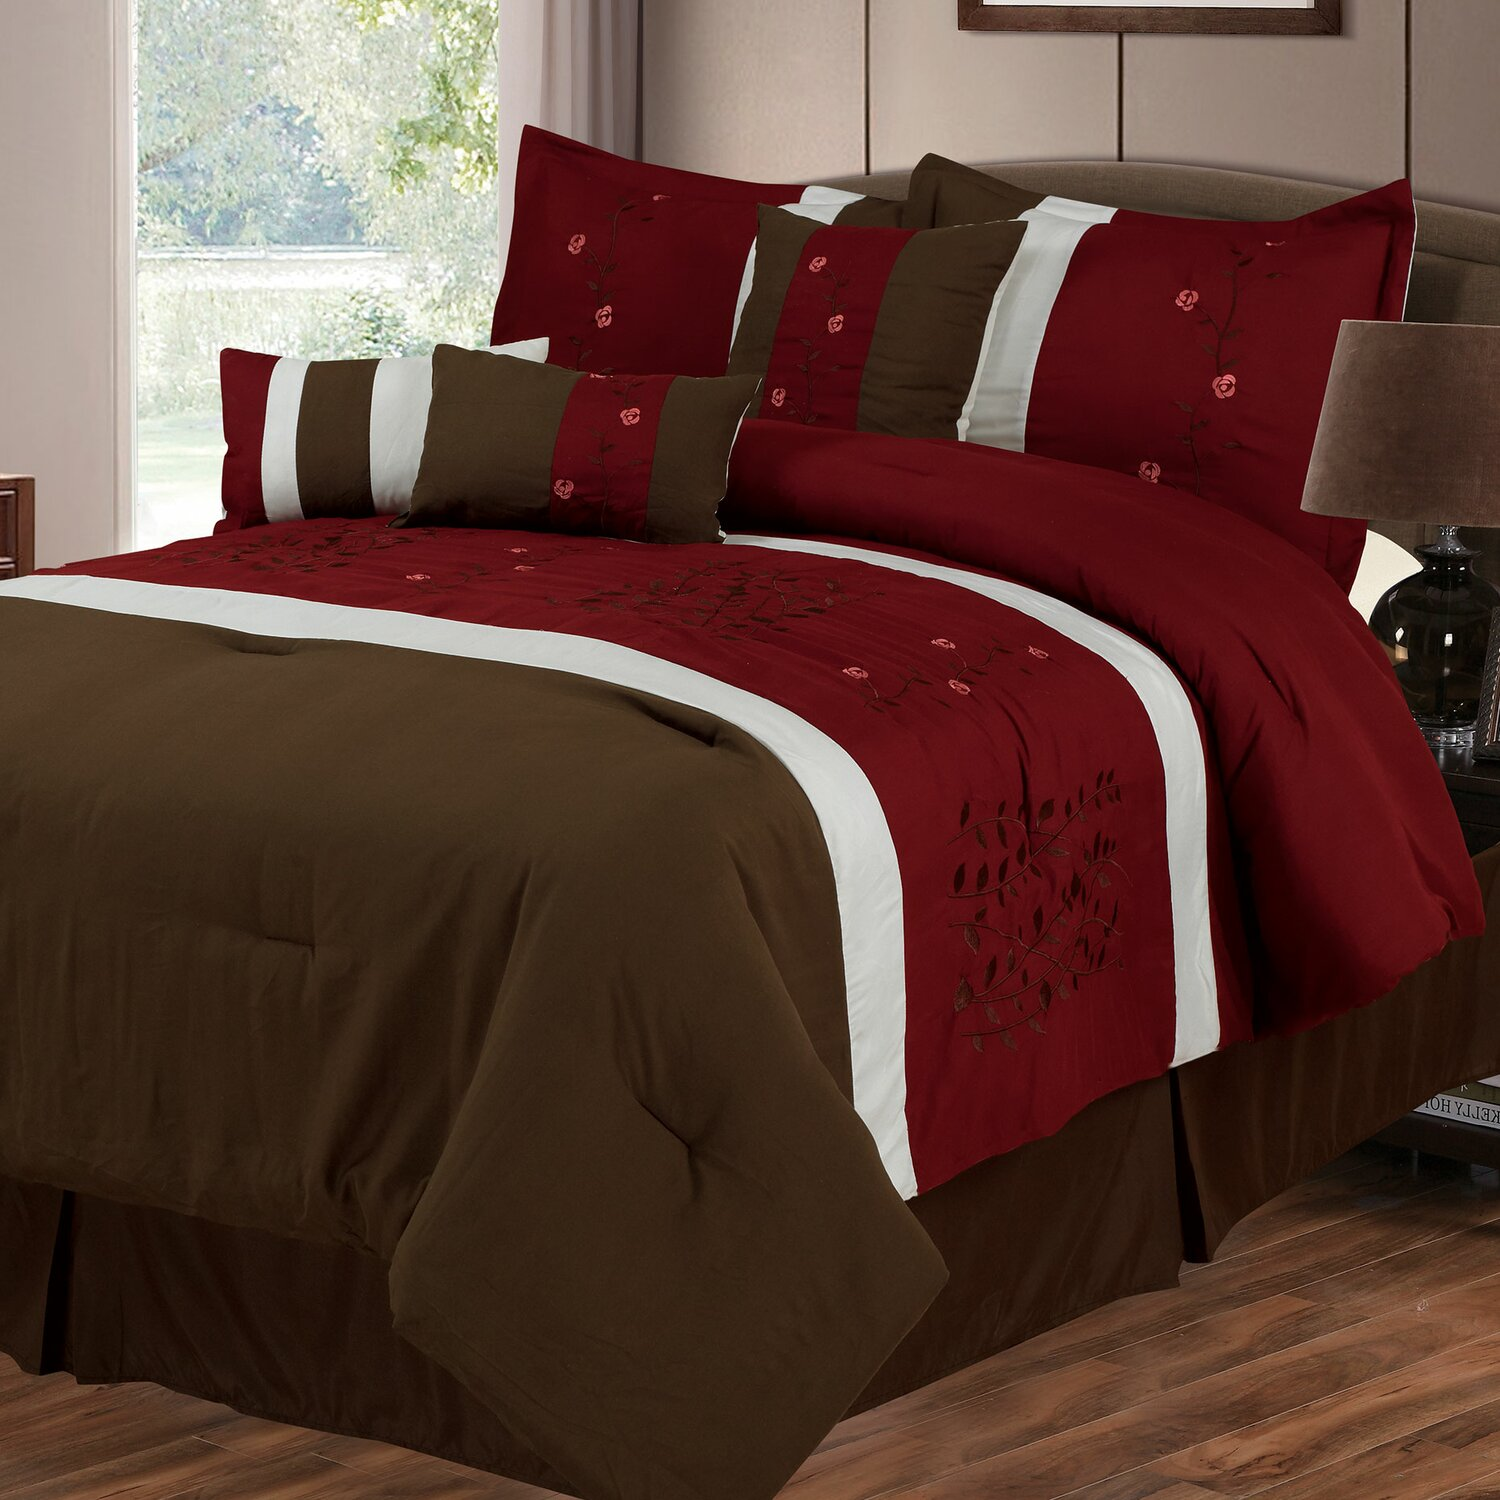 red and brown bedding red and brown bedding